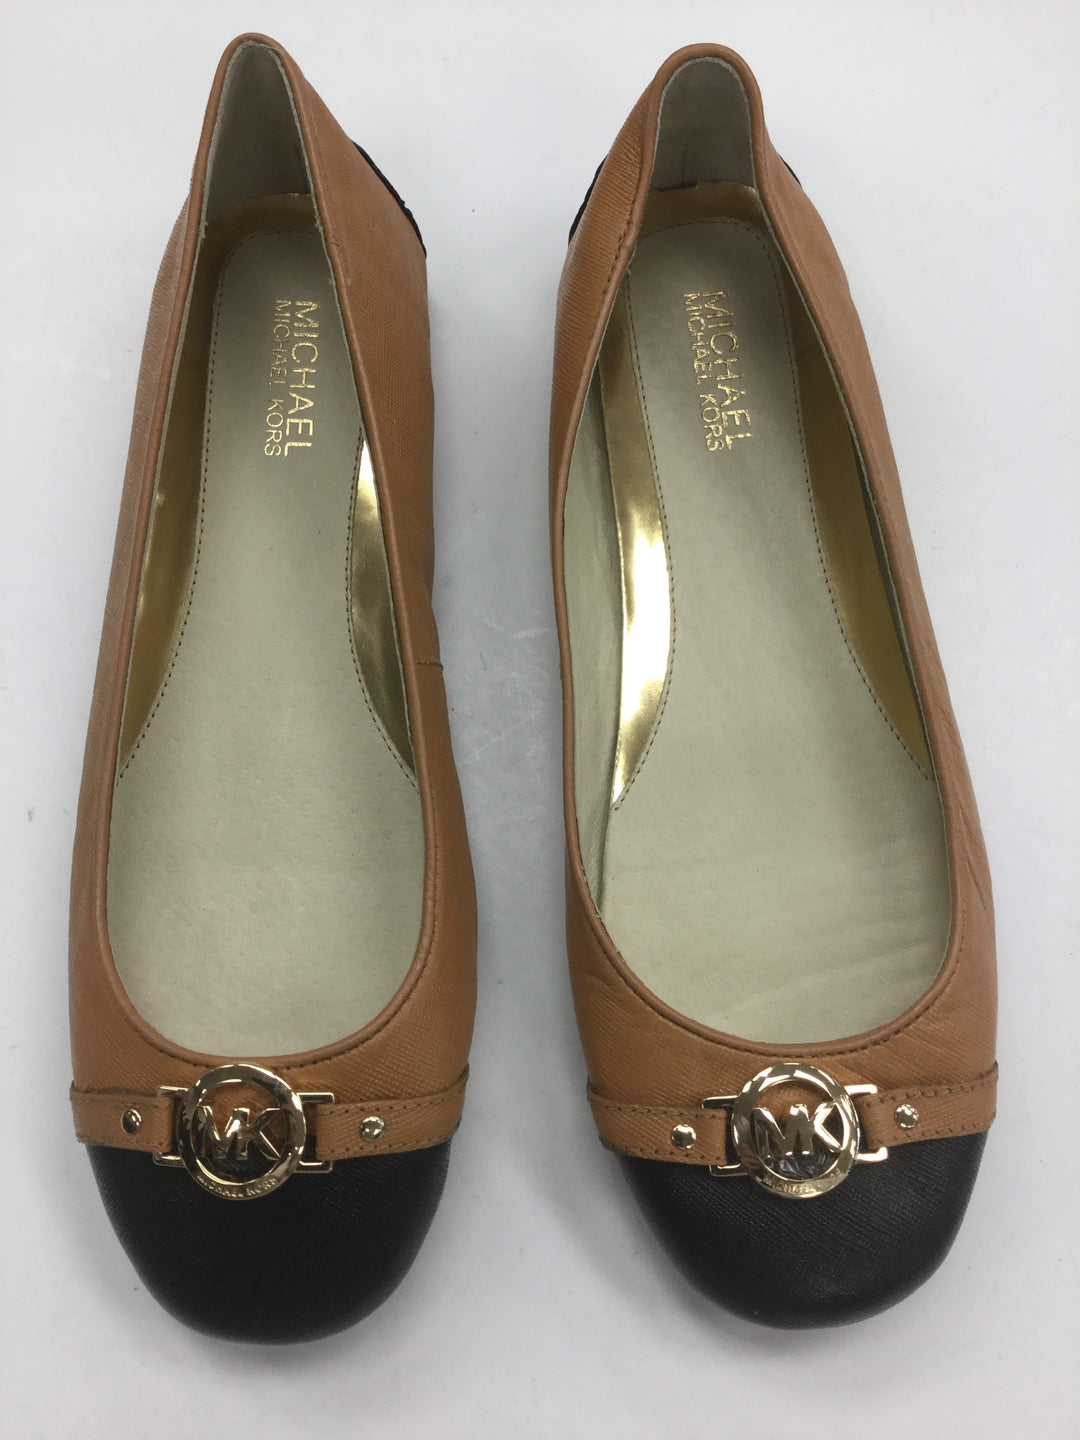 Primary Photo - BRAND: MICHAEL BY MICHAEL KORS <BR>STYLE: SHOES FLATS <BR>COLOR: CARAMEL <BR>SIZE: 9 <BR>SKU: 155-15545-207095